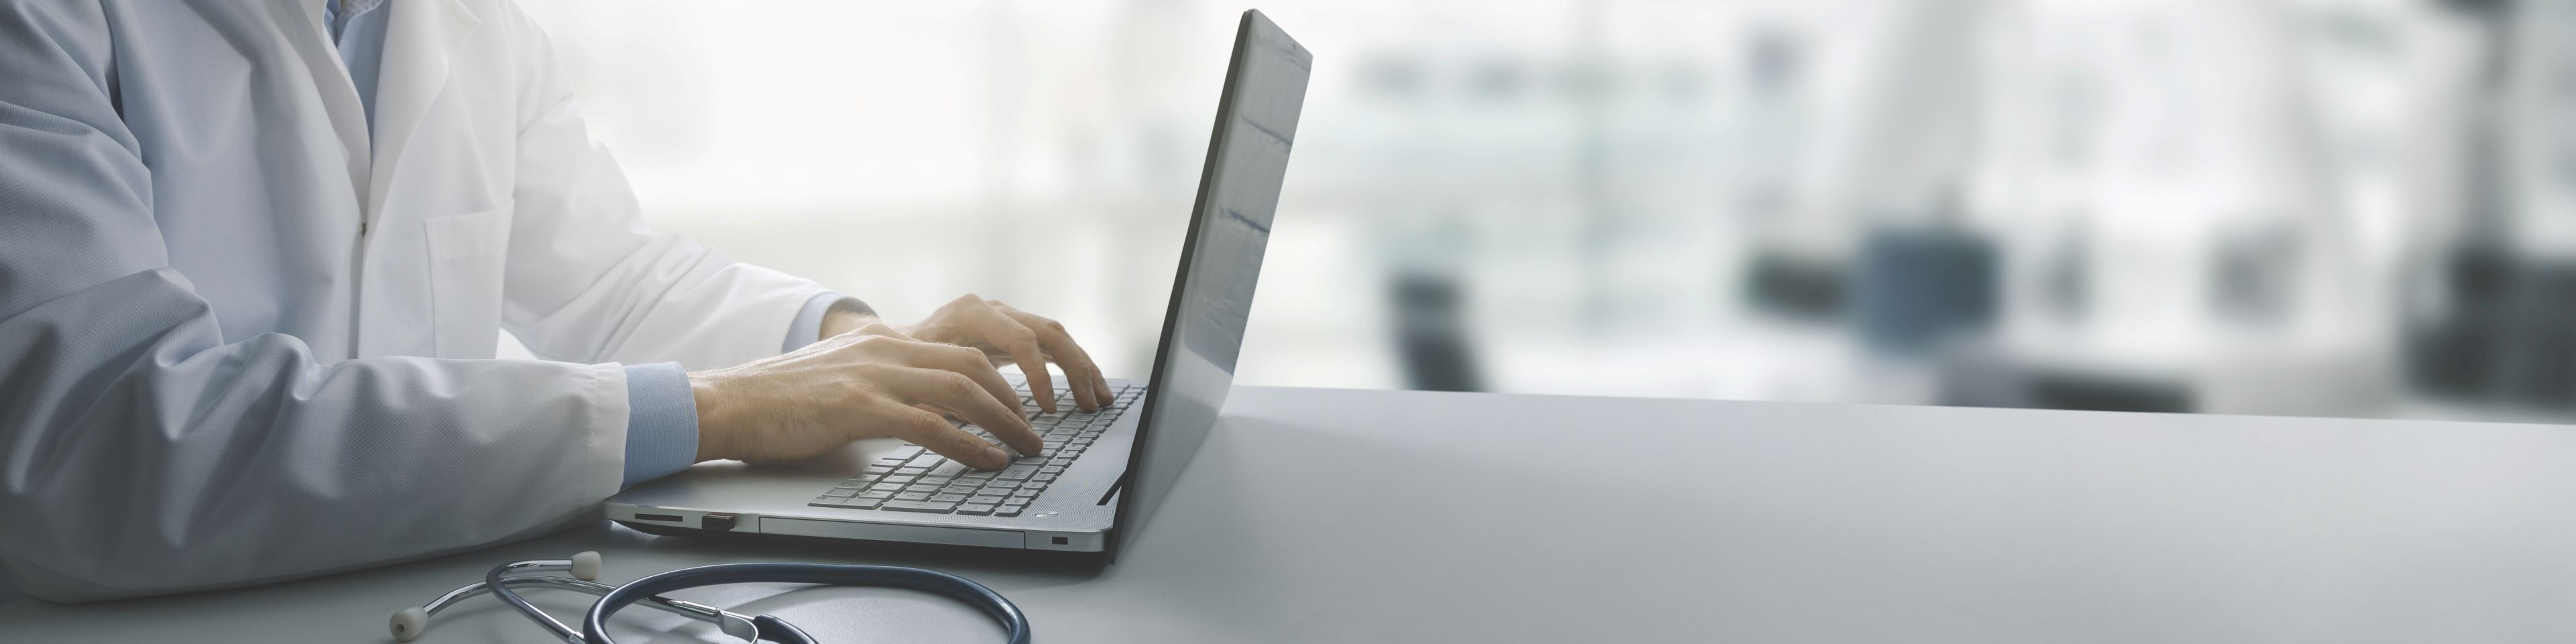 Male doctor typing on laptop at a desk.